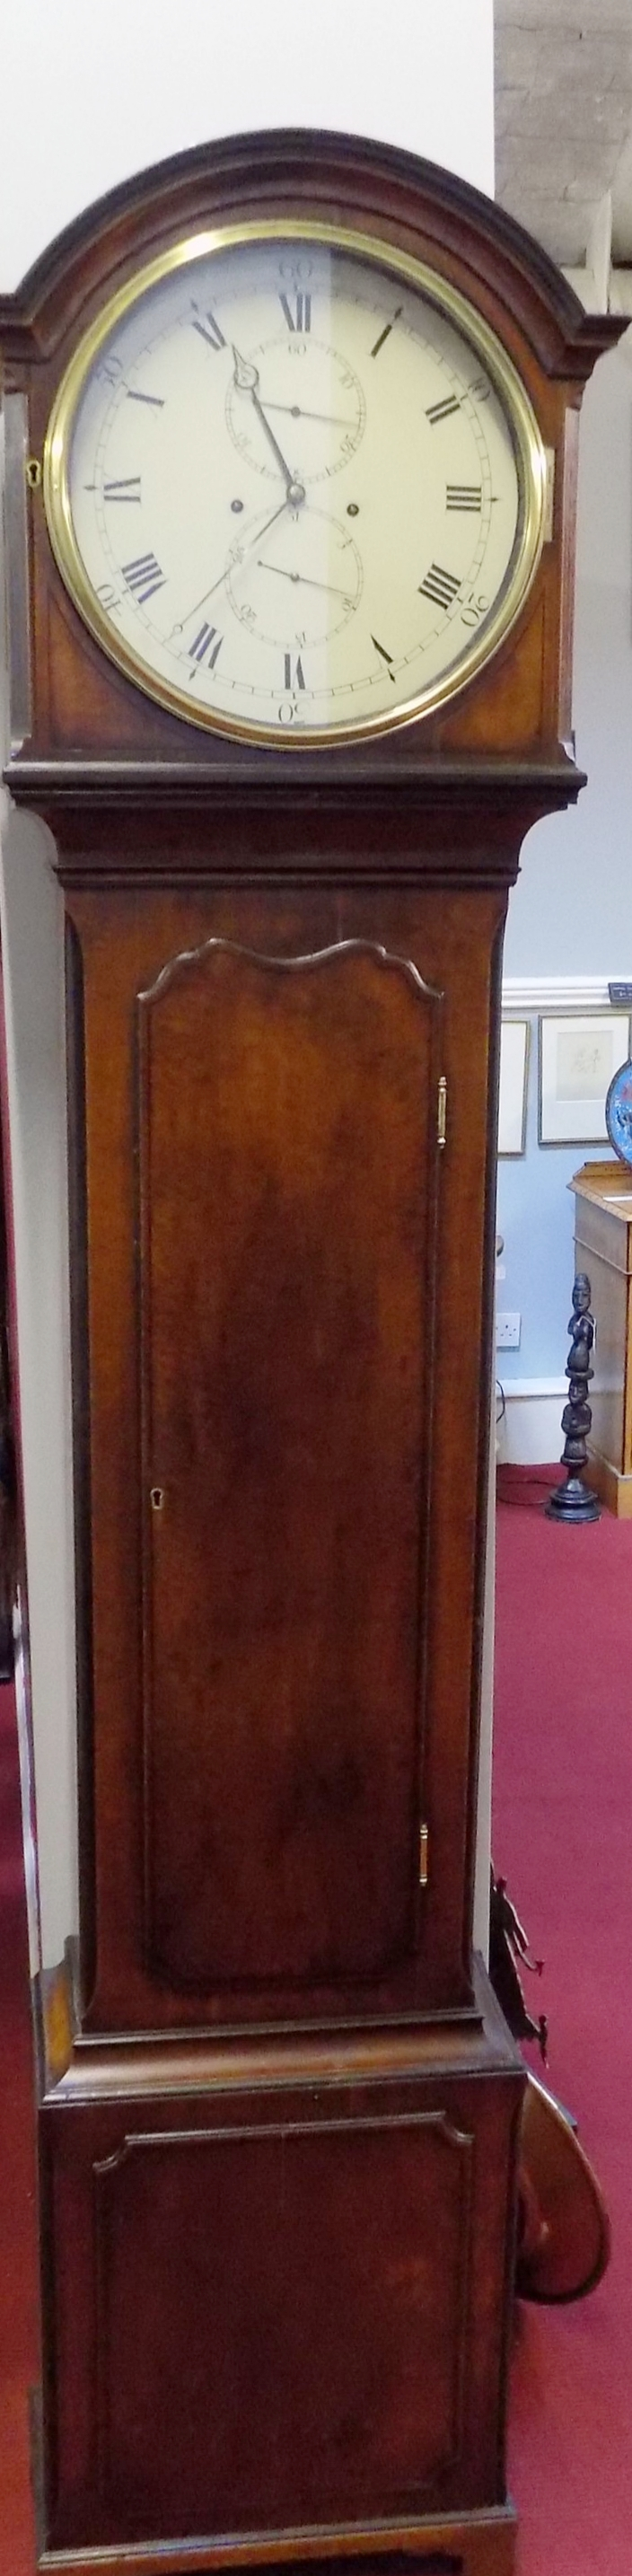 Mahogany cased Domestic regulator £1500.00